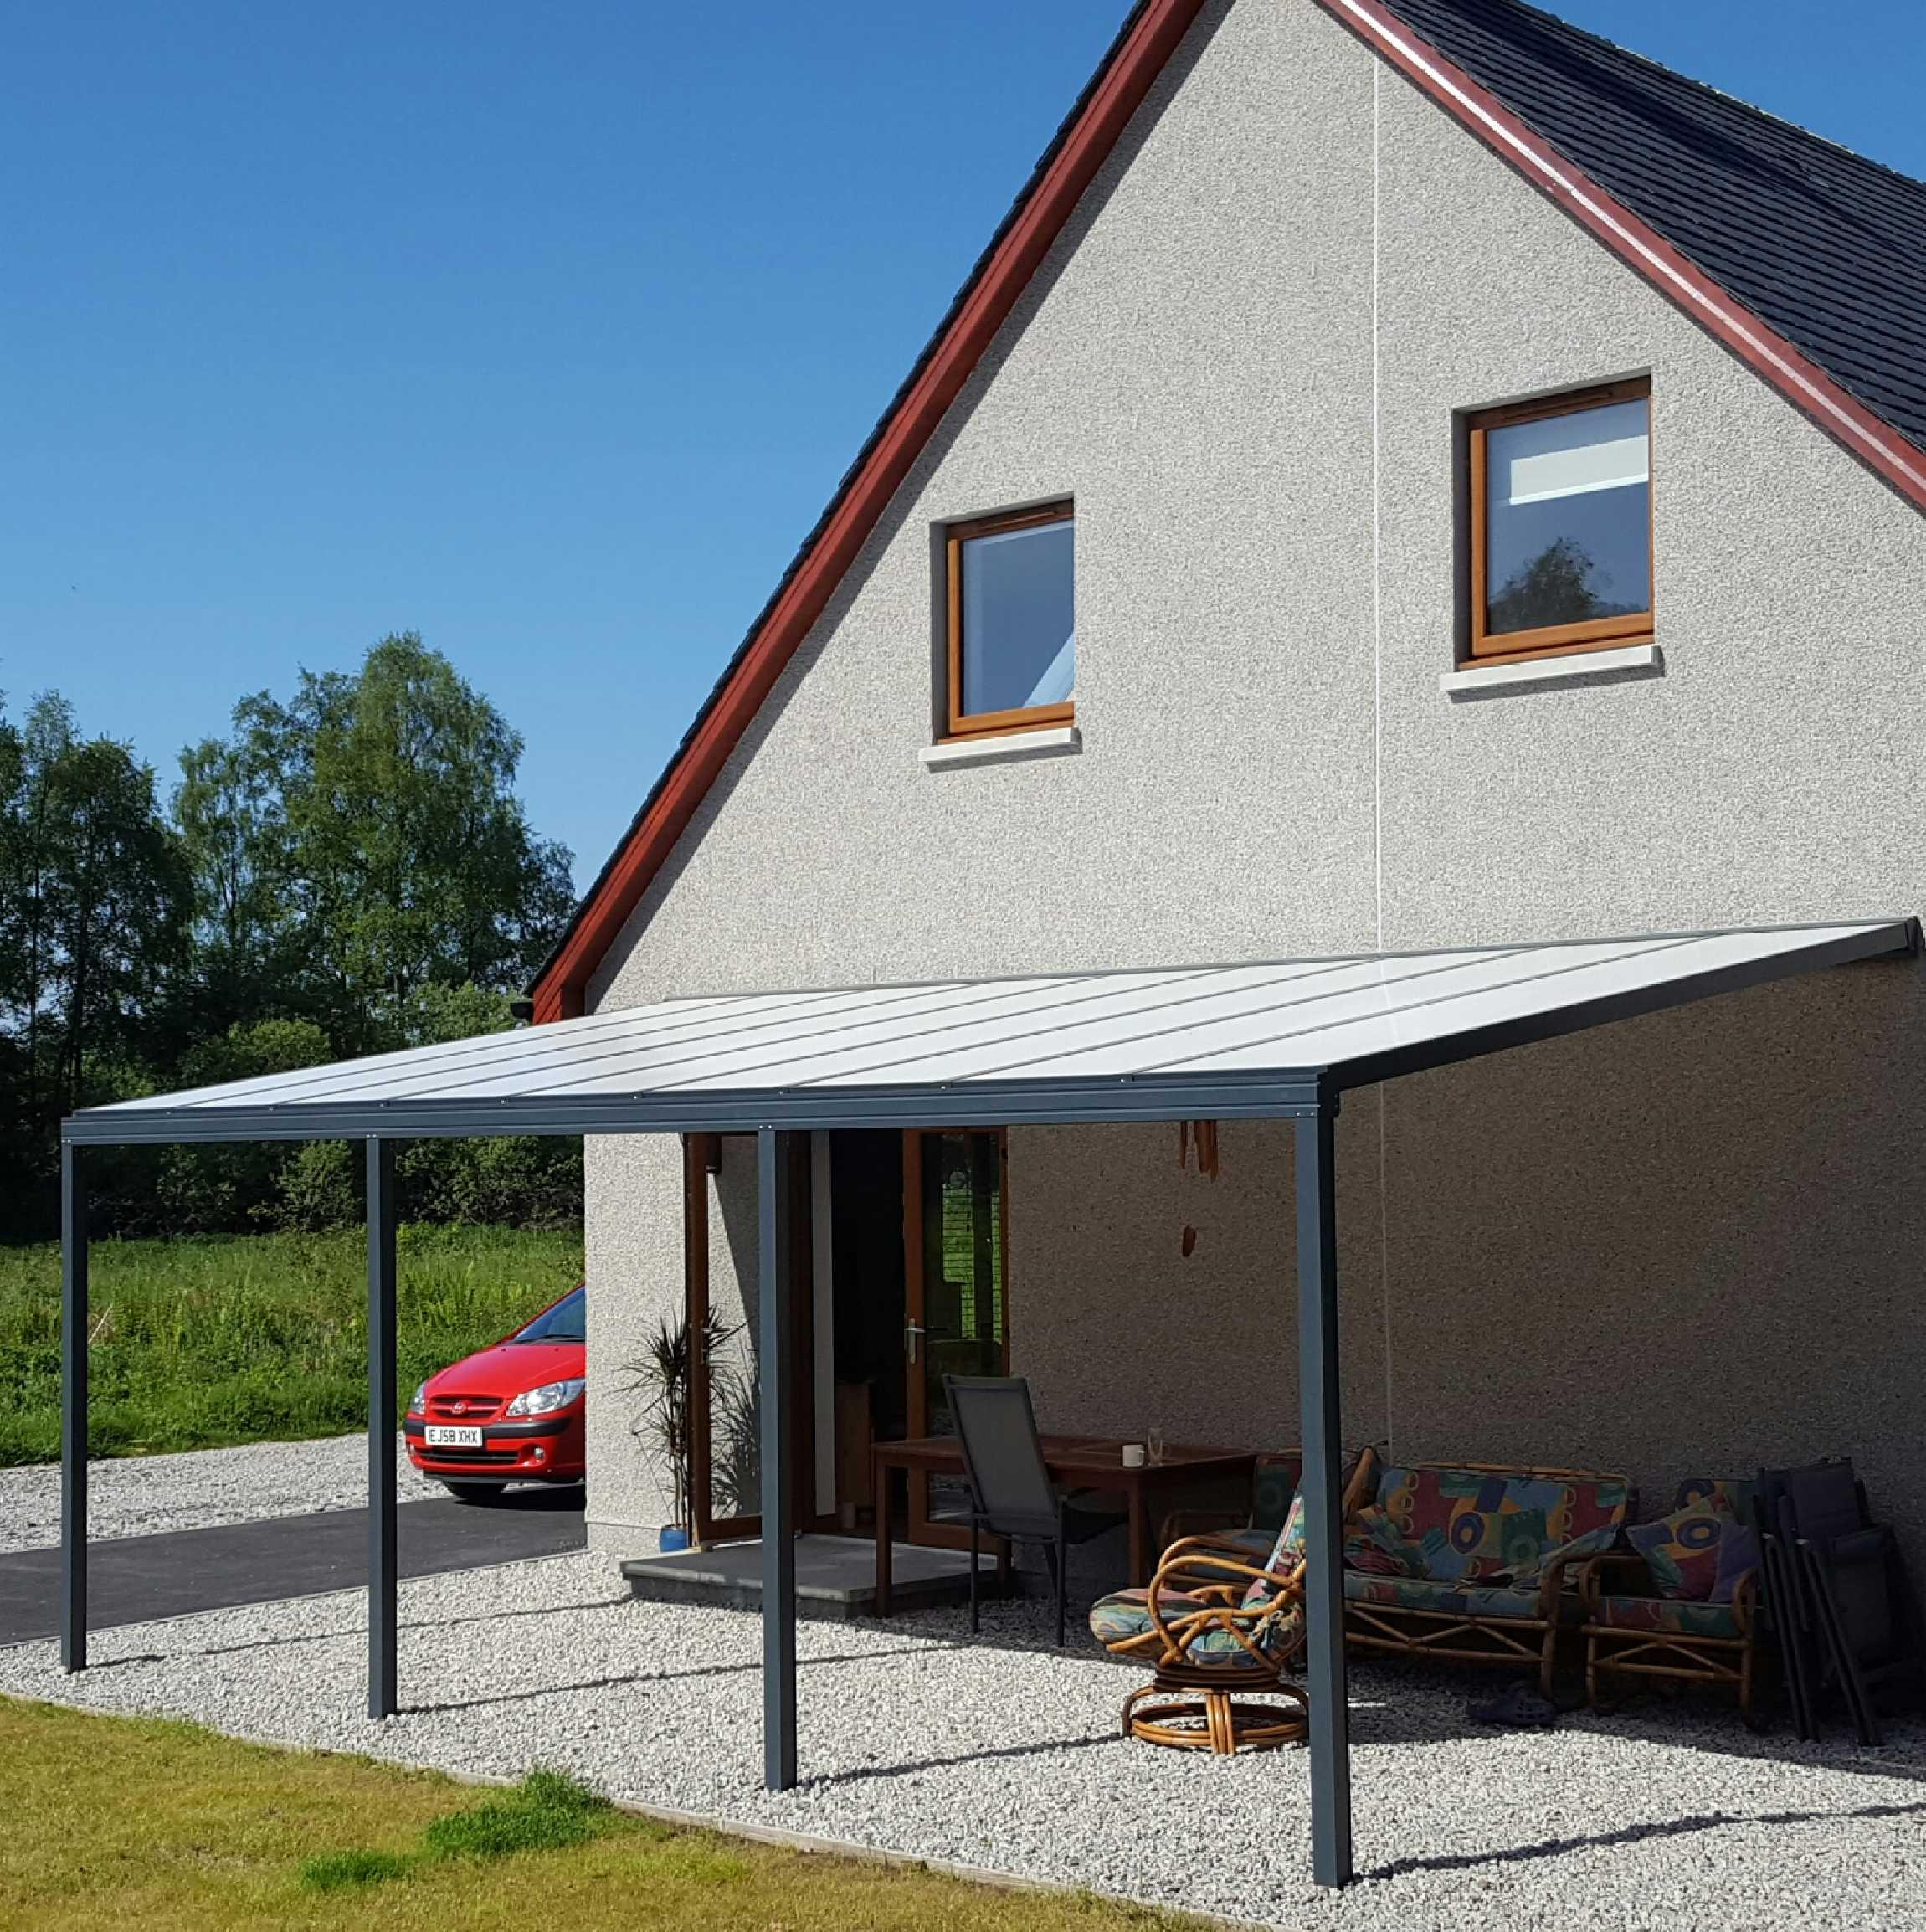 Great selection of Omega Smart Lean-To Canopy, Anthracite Grey, 16mm Polycarbonate Glazing - 2.1m (W) x 2.5m (P), (2) Supporting Posts